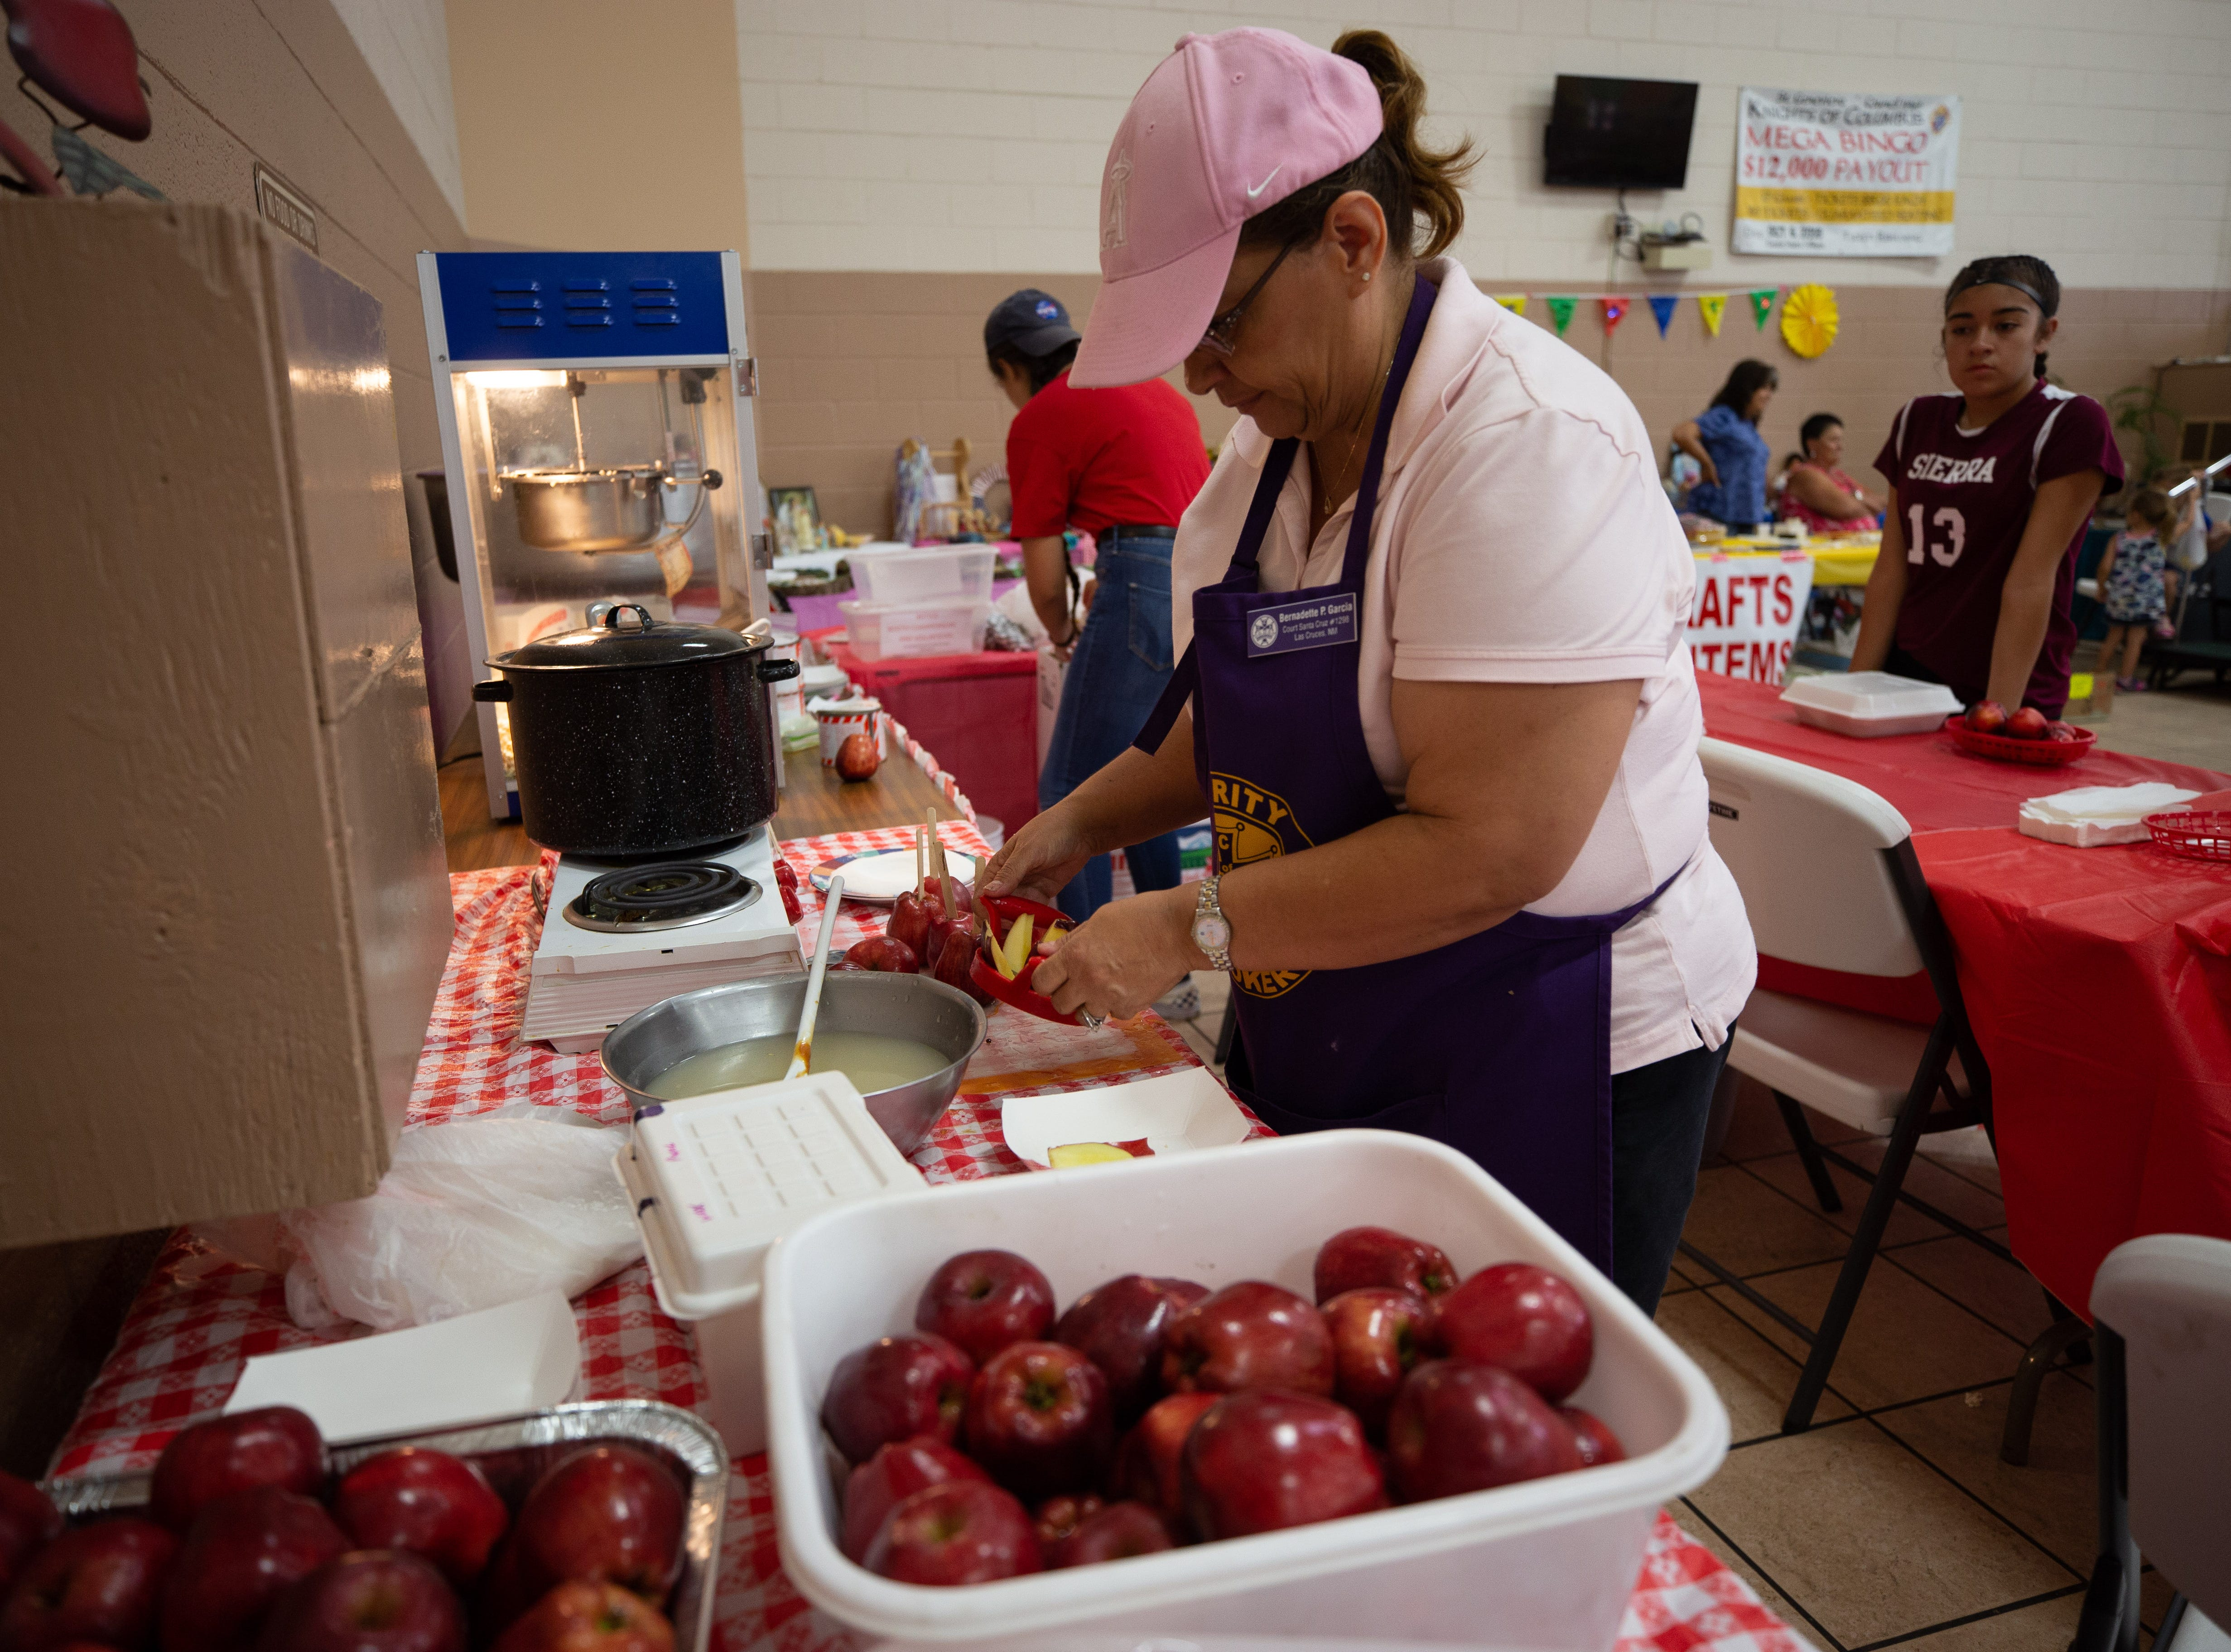 Bernadette Garcia prepares apples for a caramel drizzle at the St. Genevieve Fiesta on Saturday, Sept. 8, 2018.